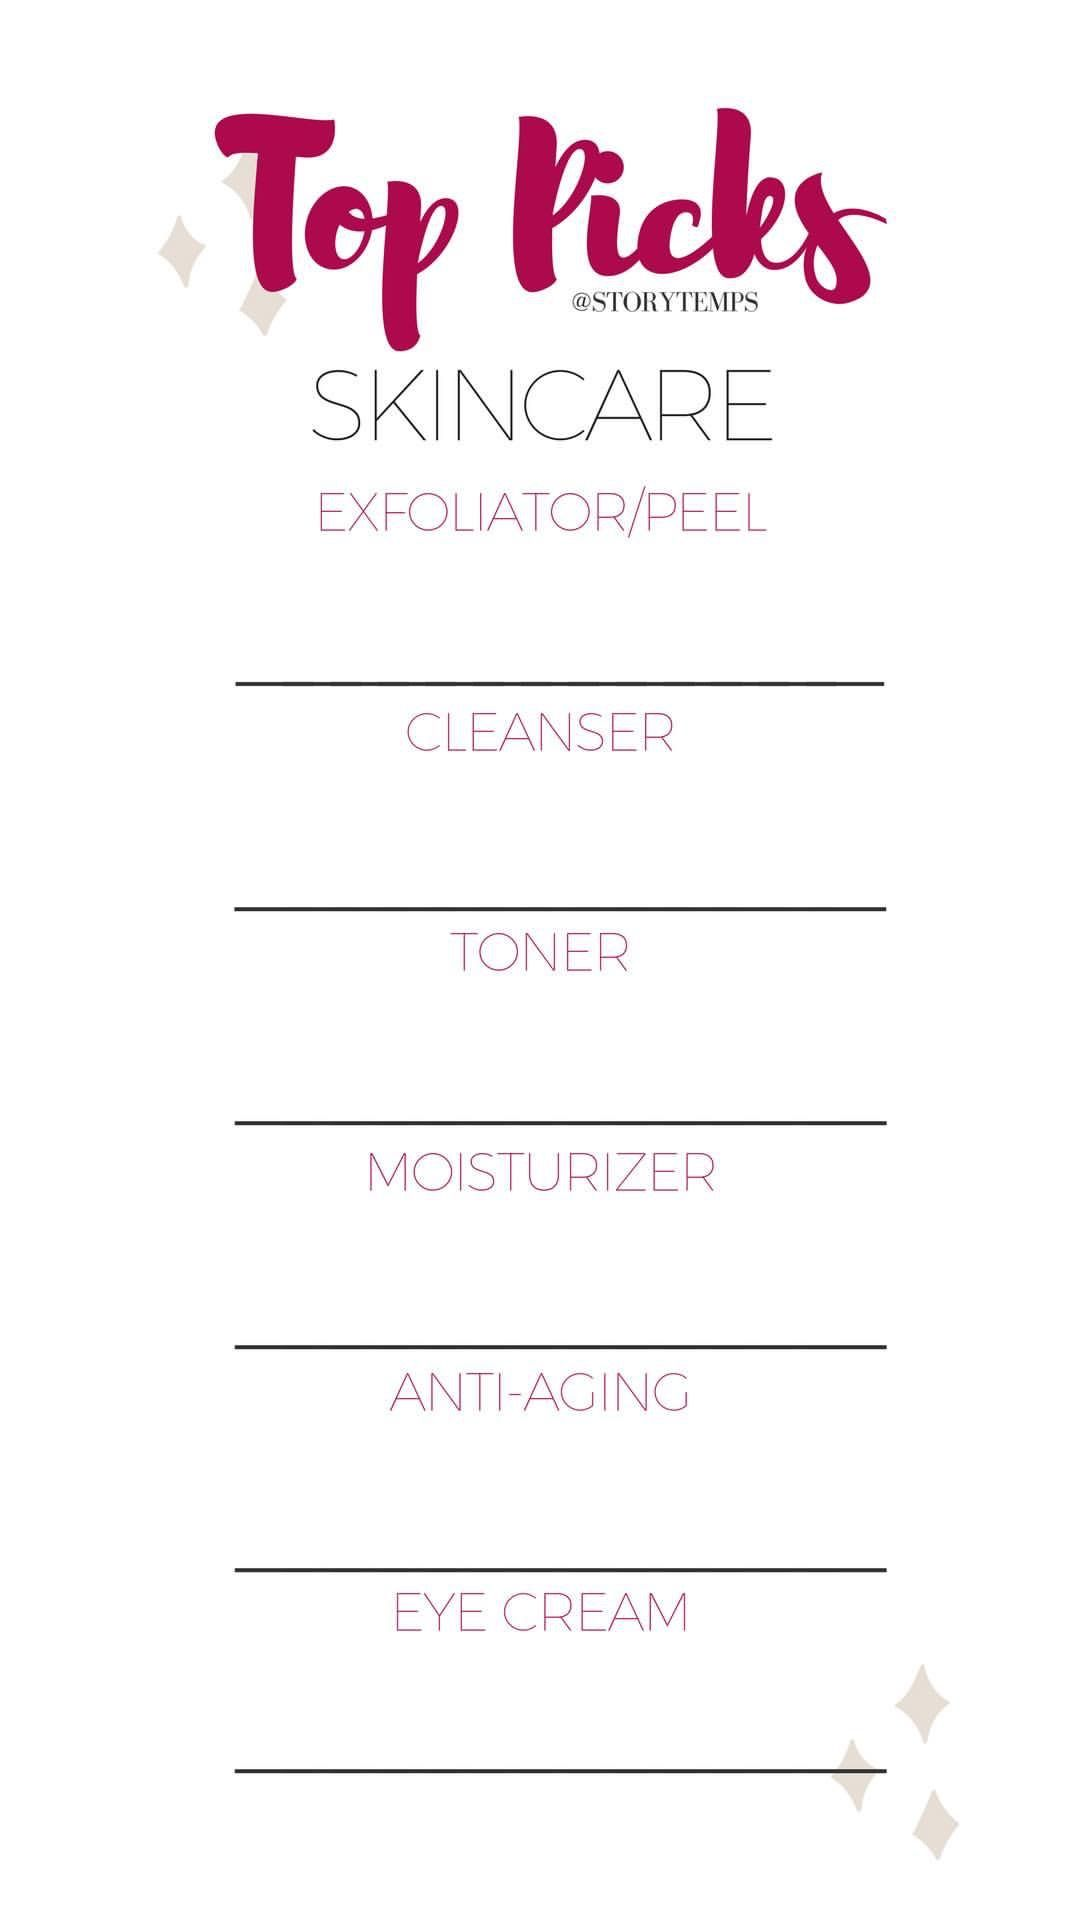 List Your Top Skincare Products Storytemps Storytemplates Storygames Instagram Facebook S Skin Care Quiz Top Skin Care Products Instagram Story Template